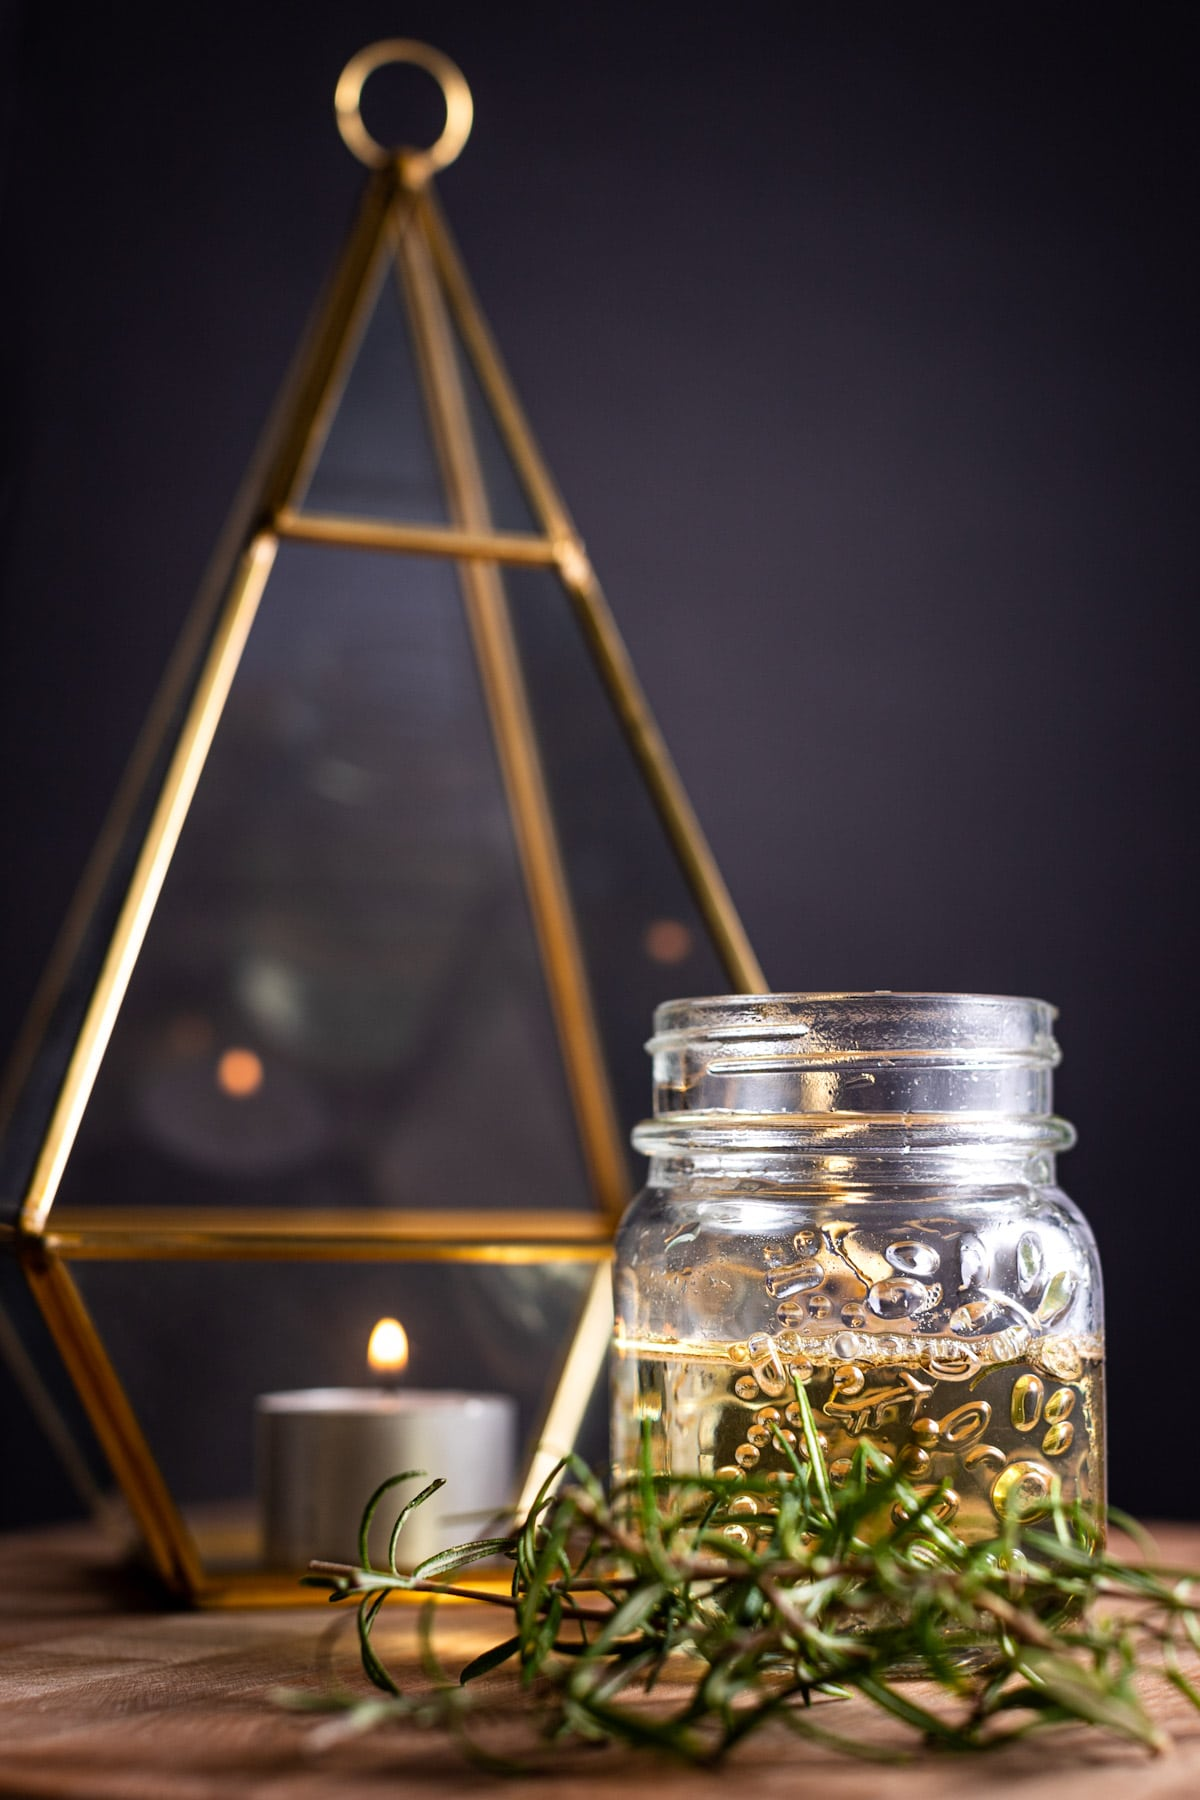 Jar of rosemary simple syrup, on a wooden board, next to a candle, gold votive and fresh rosemary on a black background.